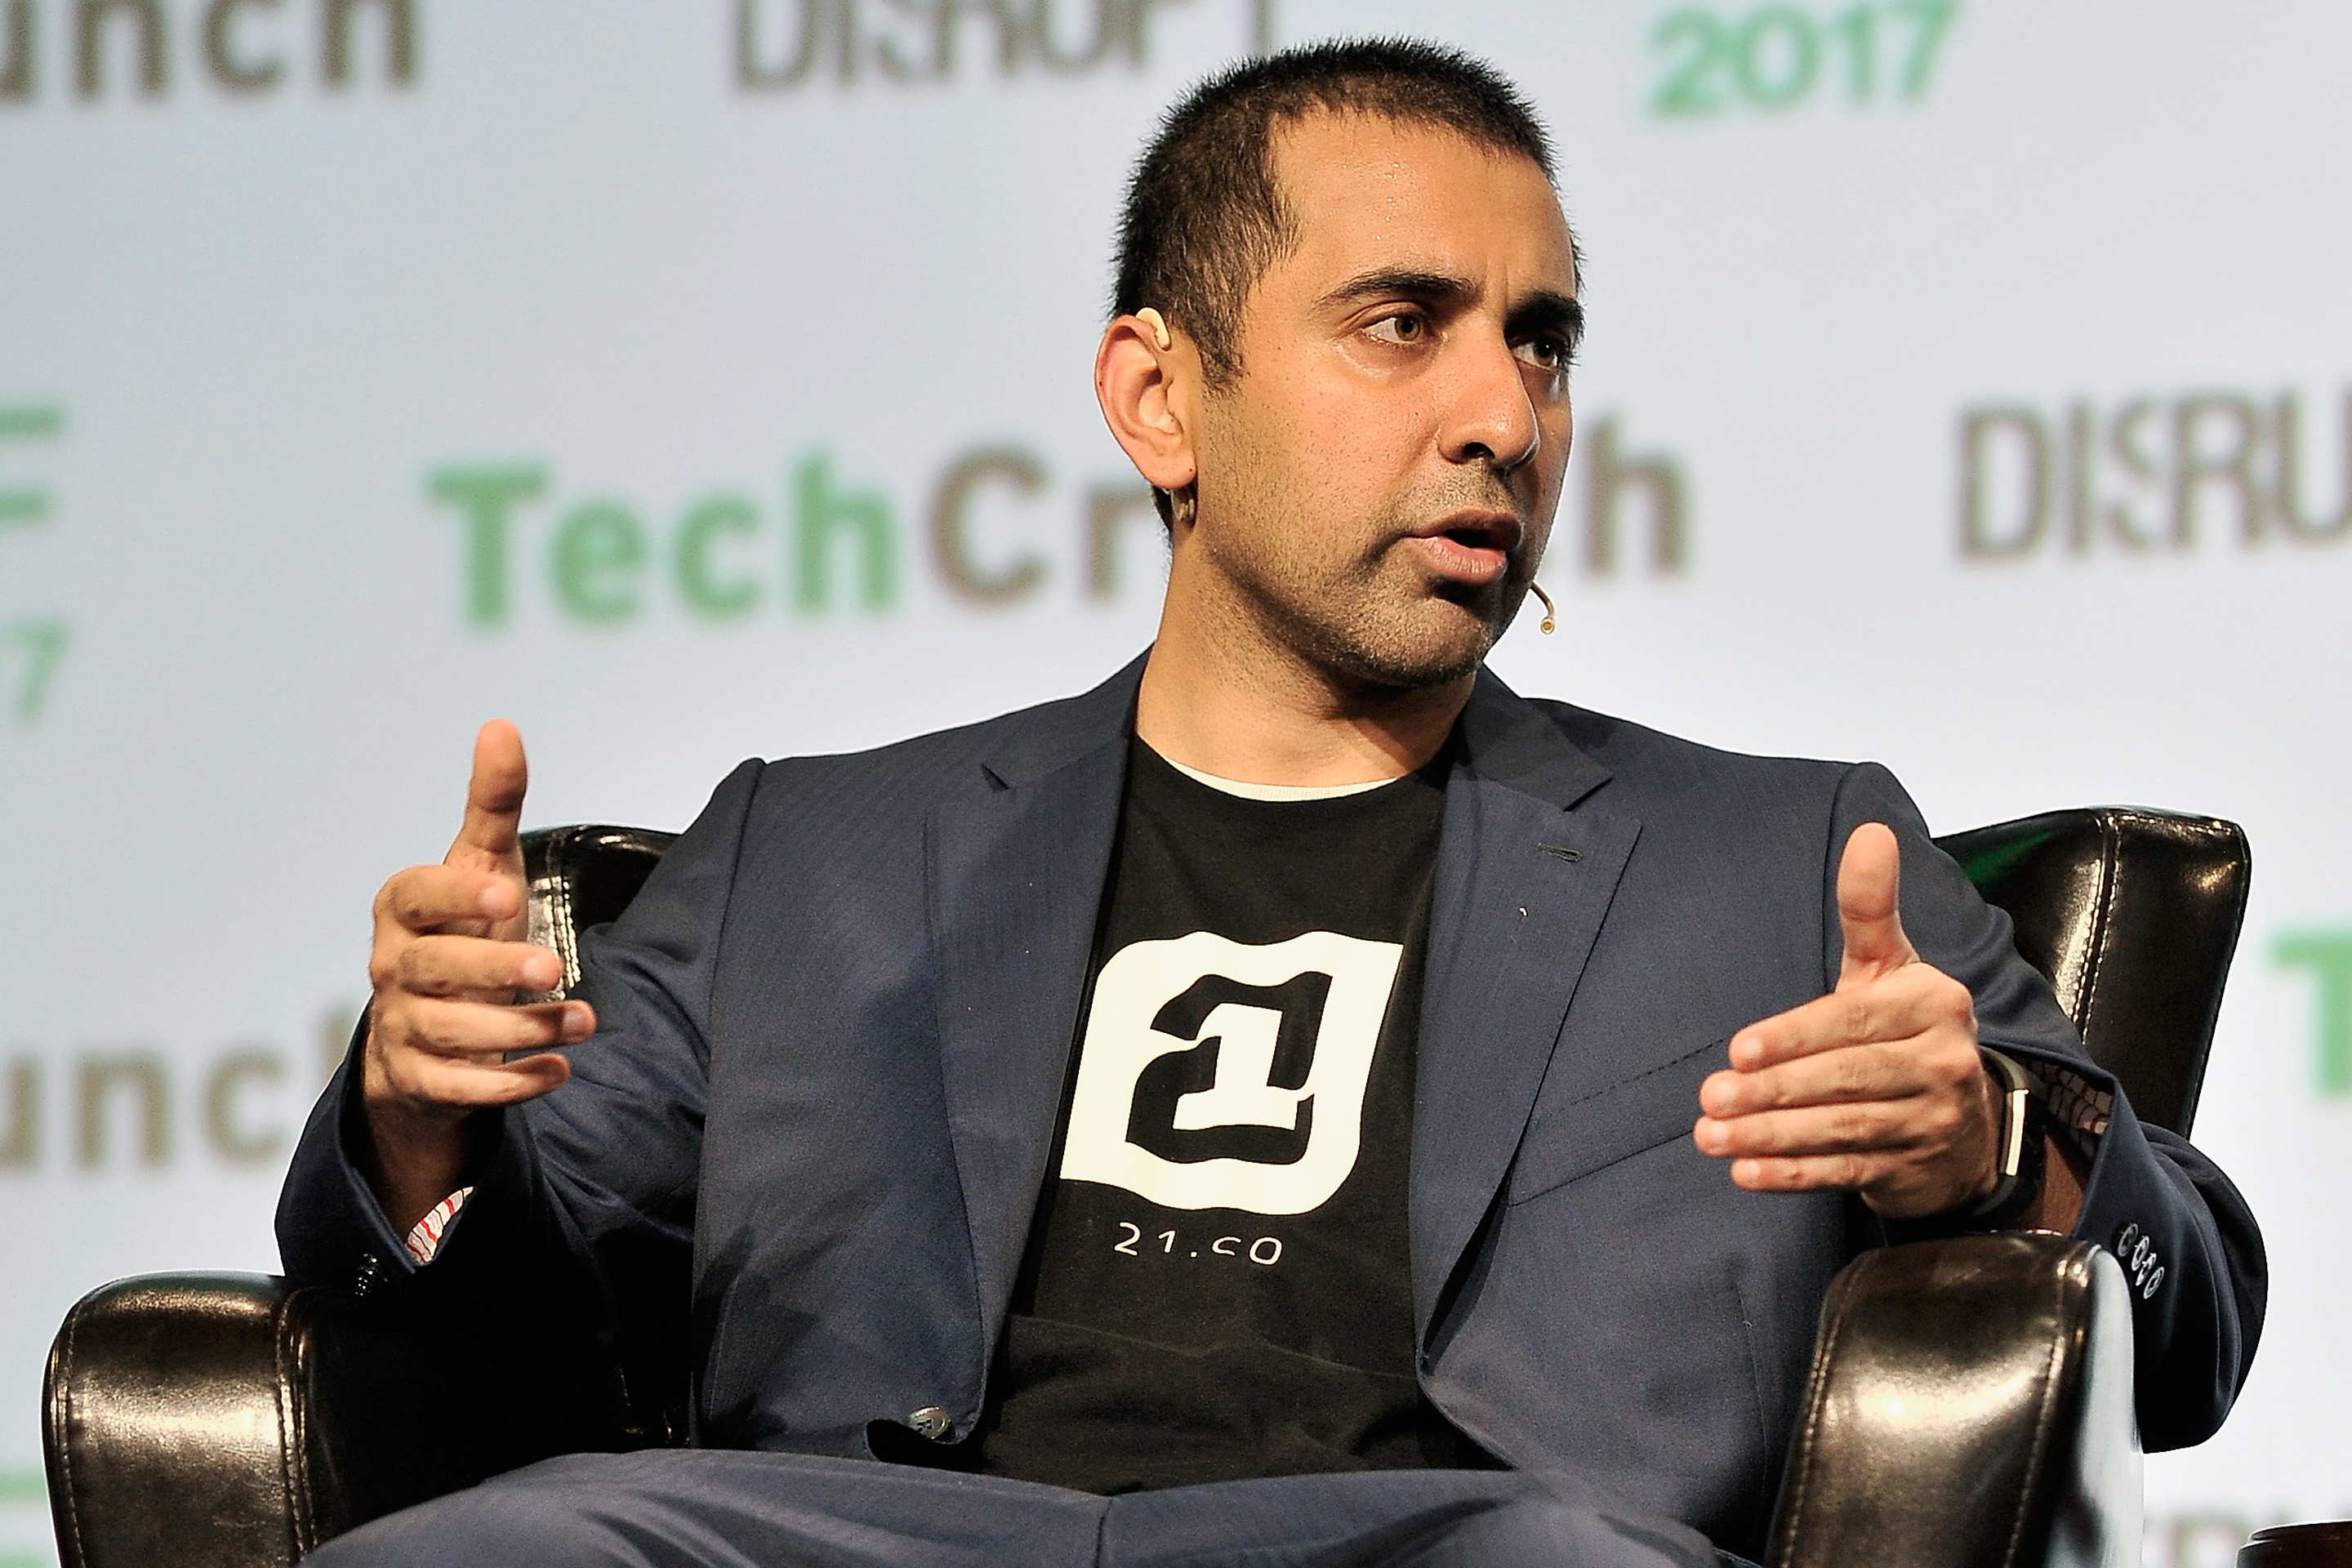 TechCrunch Disrupt SF 2017 - Day 3